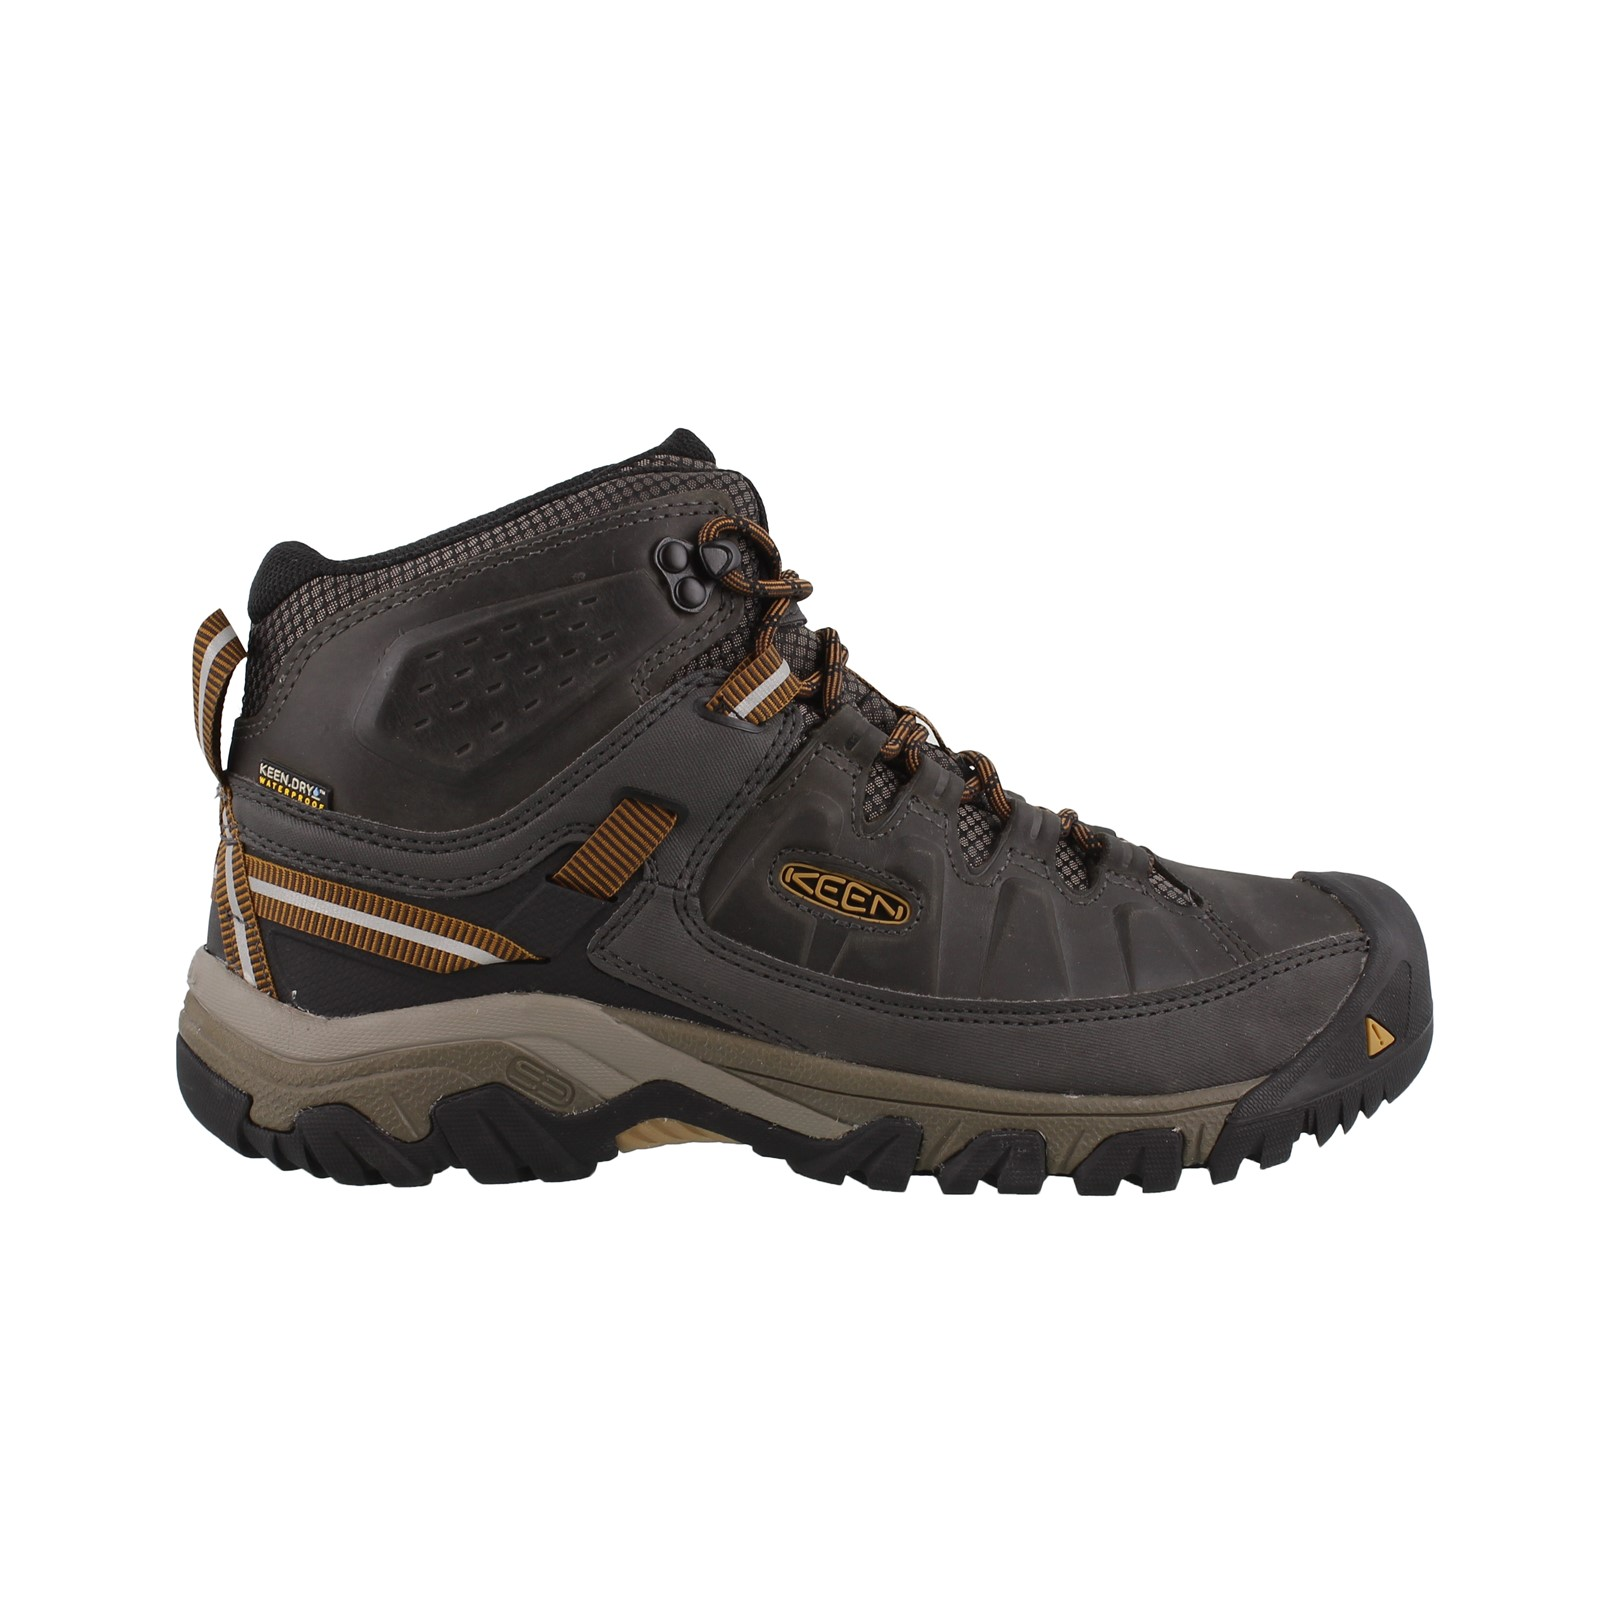 Men's Keen, Targhee III Mid Waterproof Hiking Boots